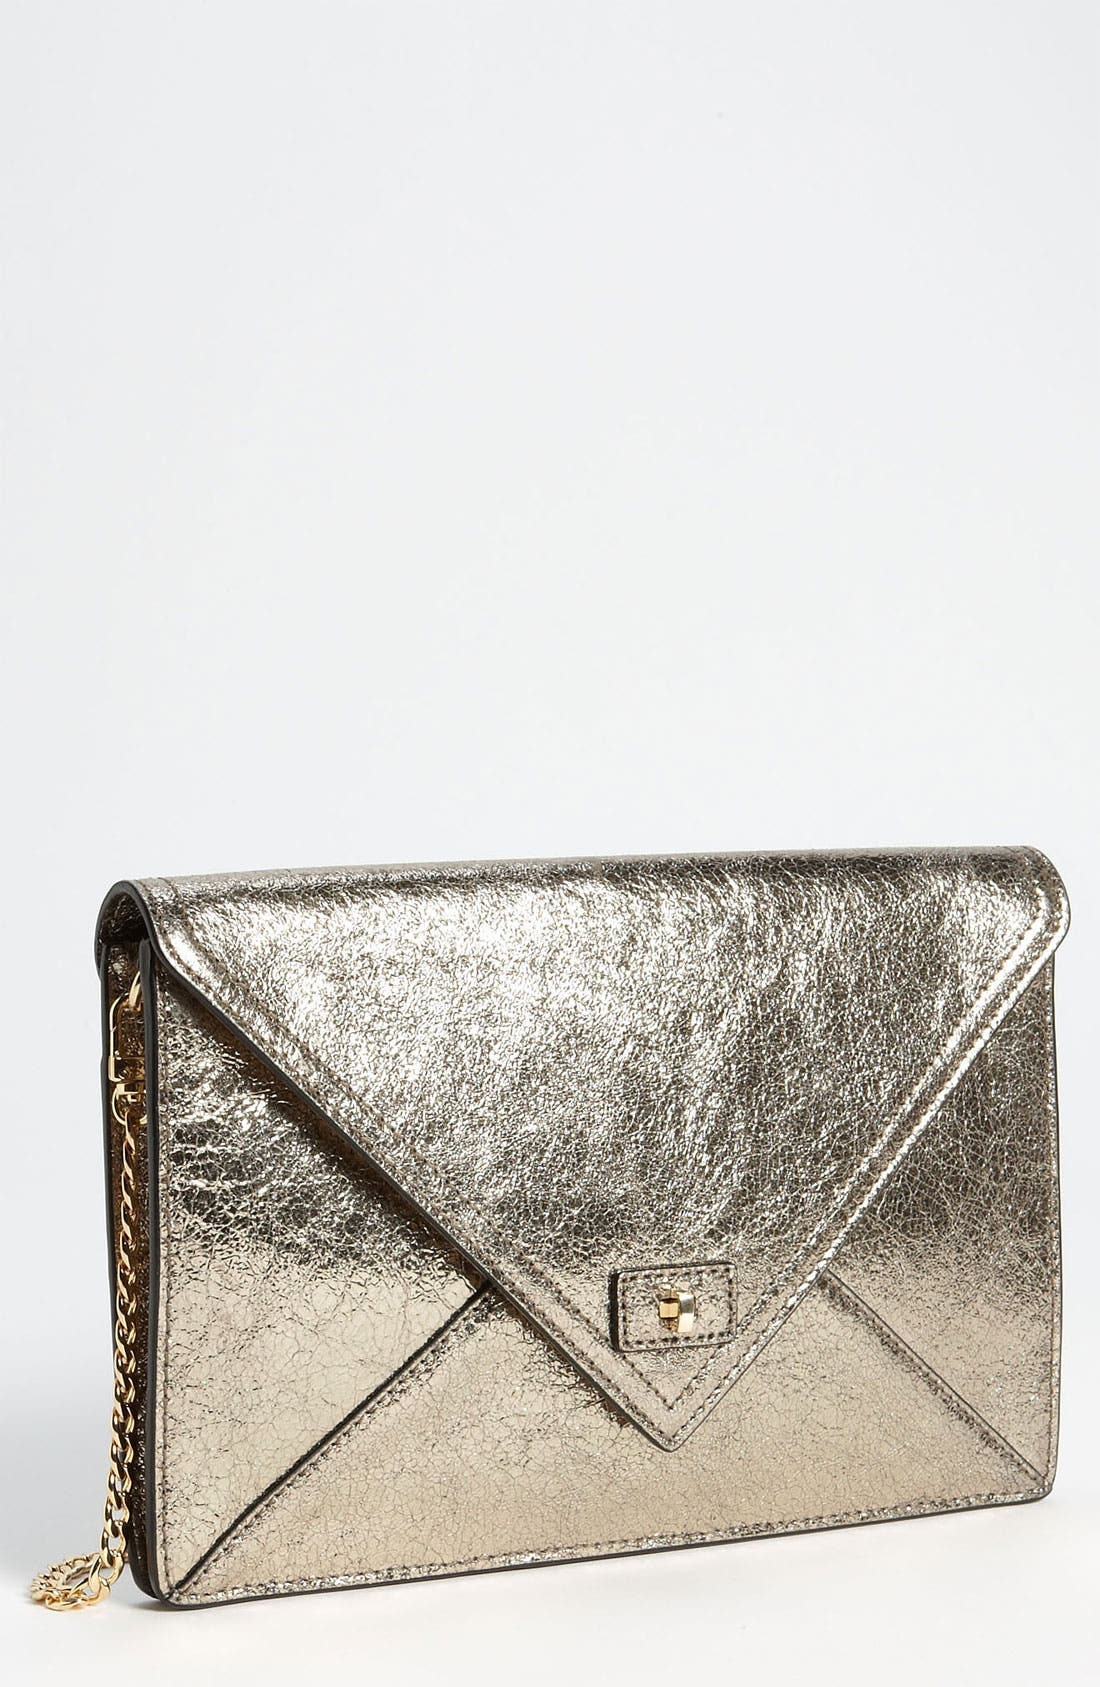 Main Image - Milly 'Lola' Envelope Clutch